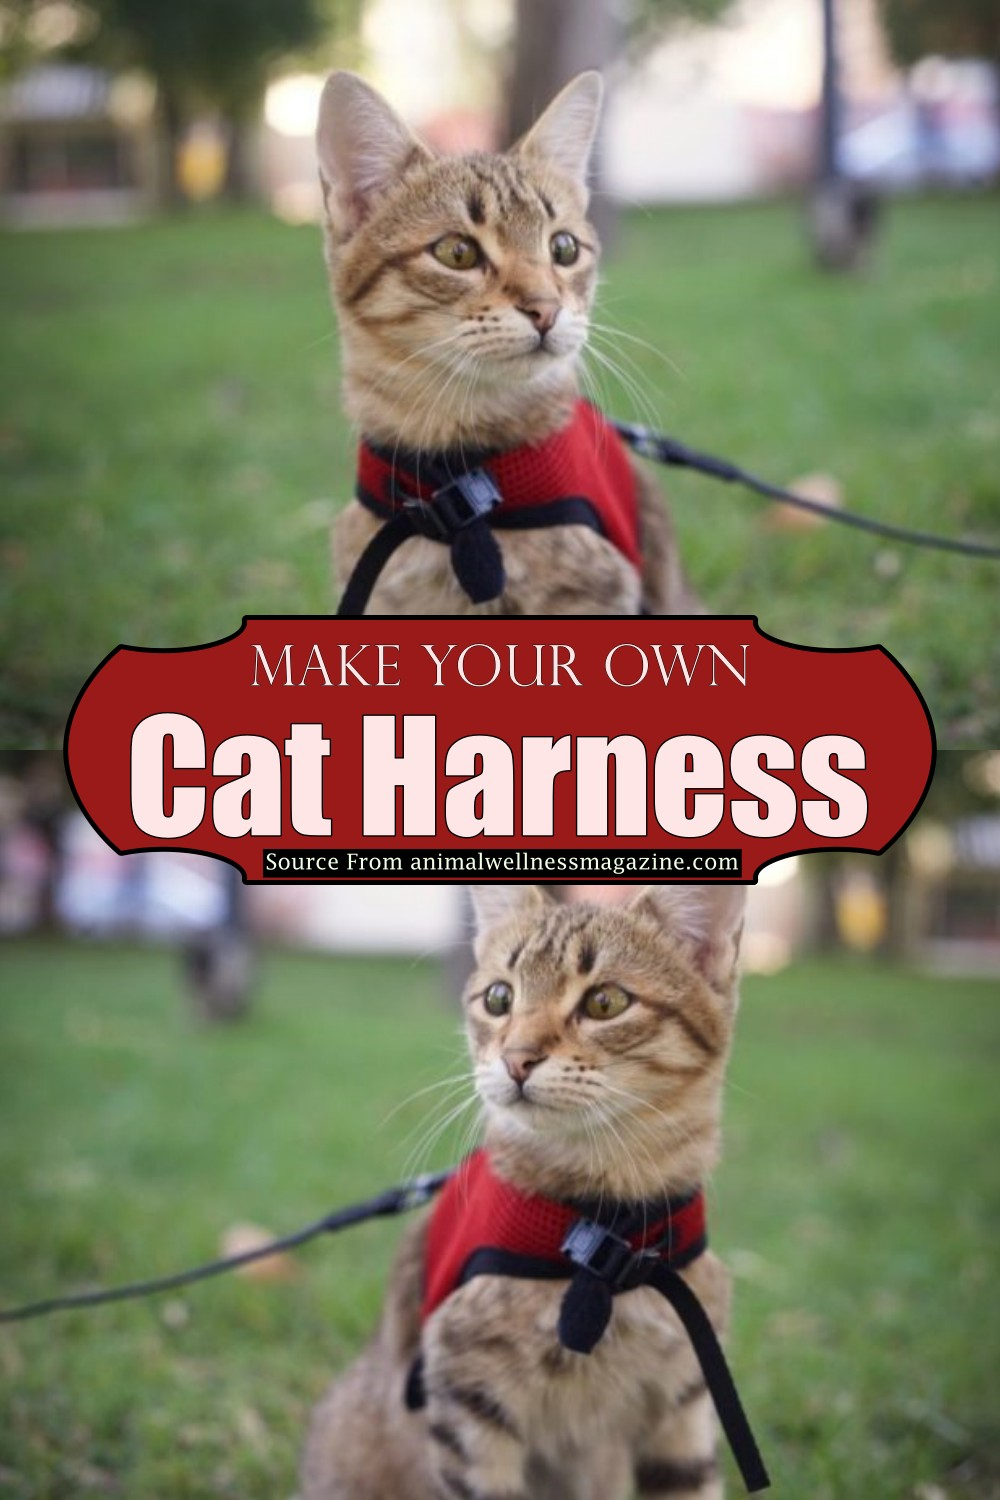 Make Your Own Cat Harness